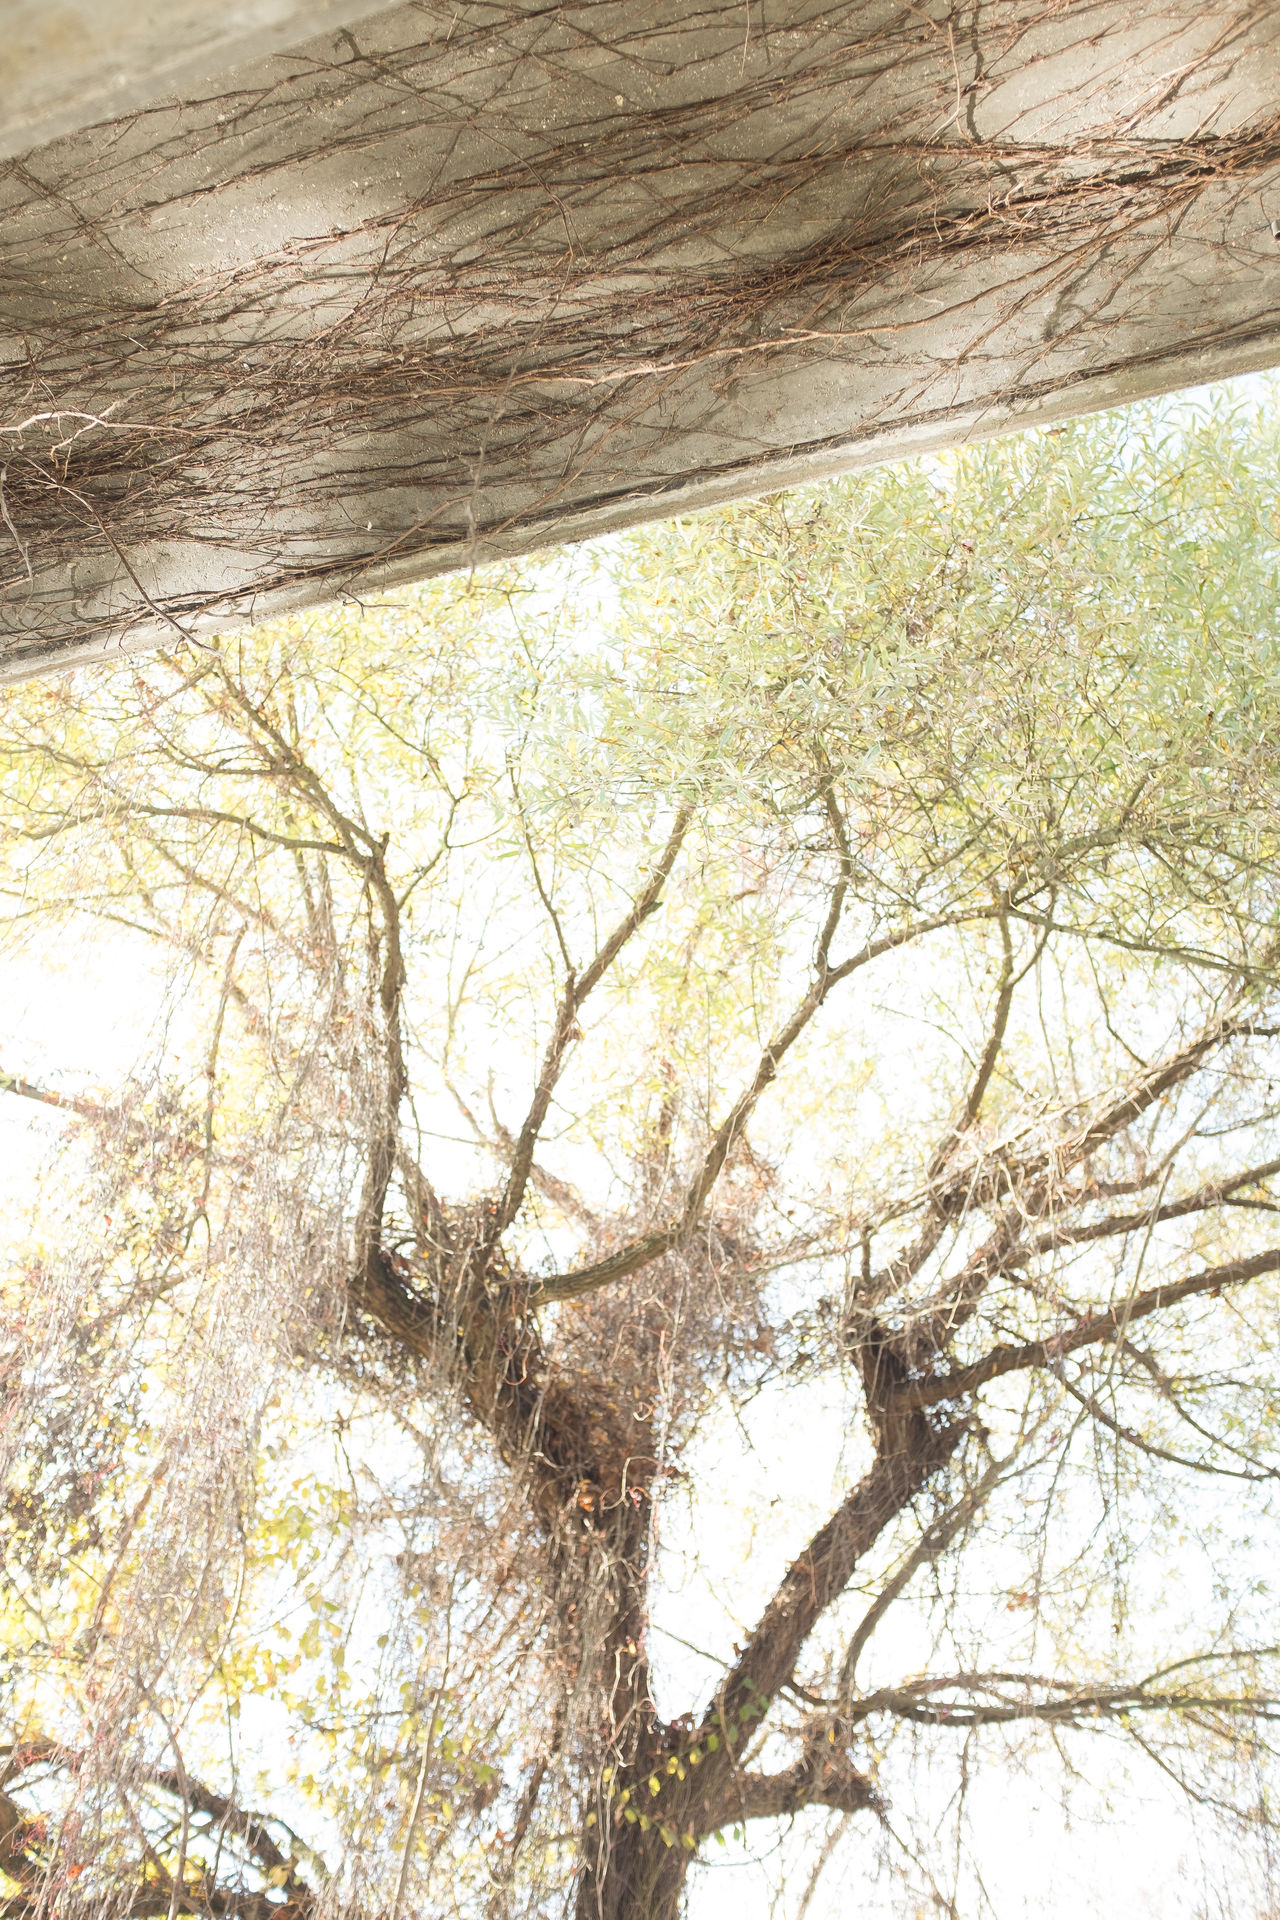 Under the bridge Backgrounds Bare Tree Beauty In Nature Branch Close-up Concrete Bridge Day Full Frame Growth Lighting Patterns Low Angle View Nature No People Outdoors Shadow Sky Southern Germany Sunlight Tranquility Tree Willow Tree